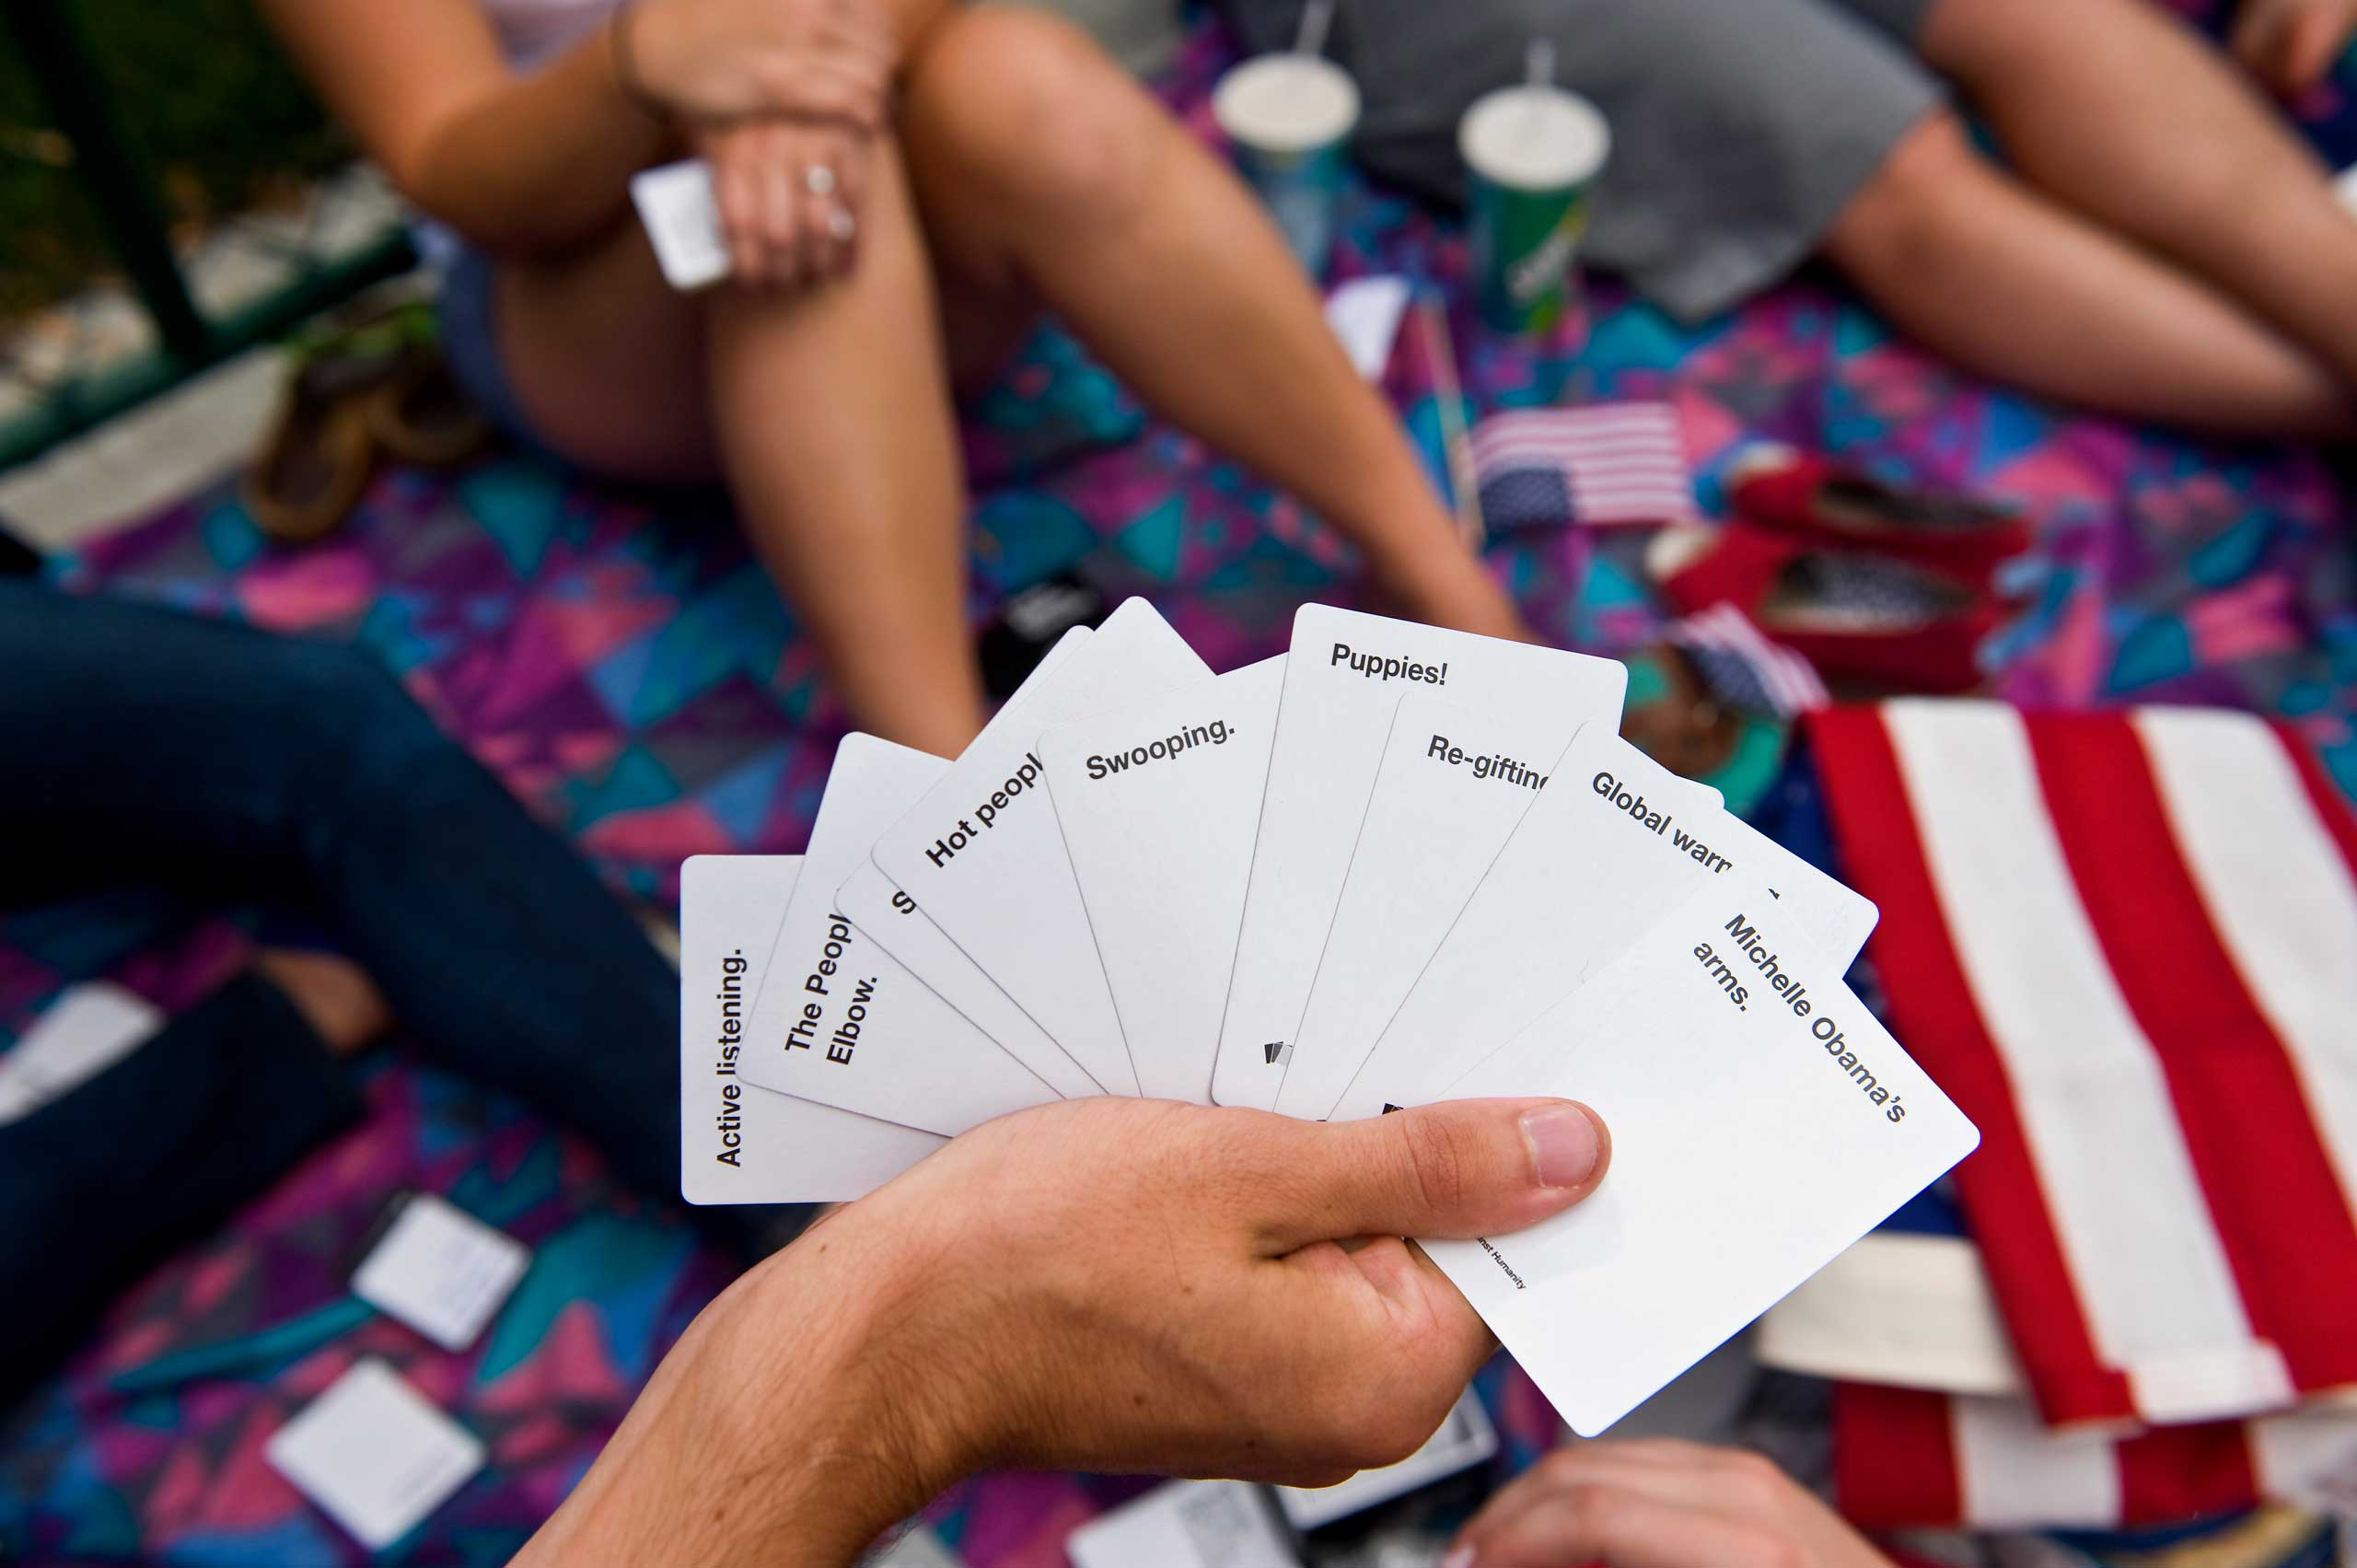 Students play Cards Against Humanity in Denver.